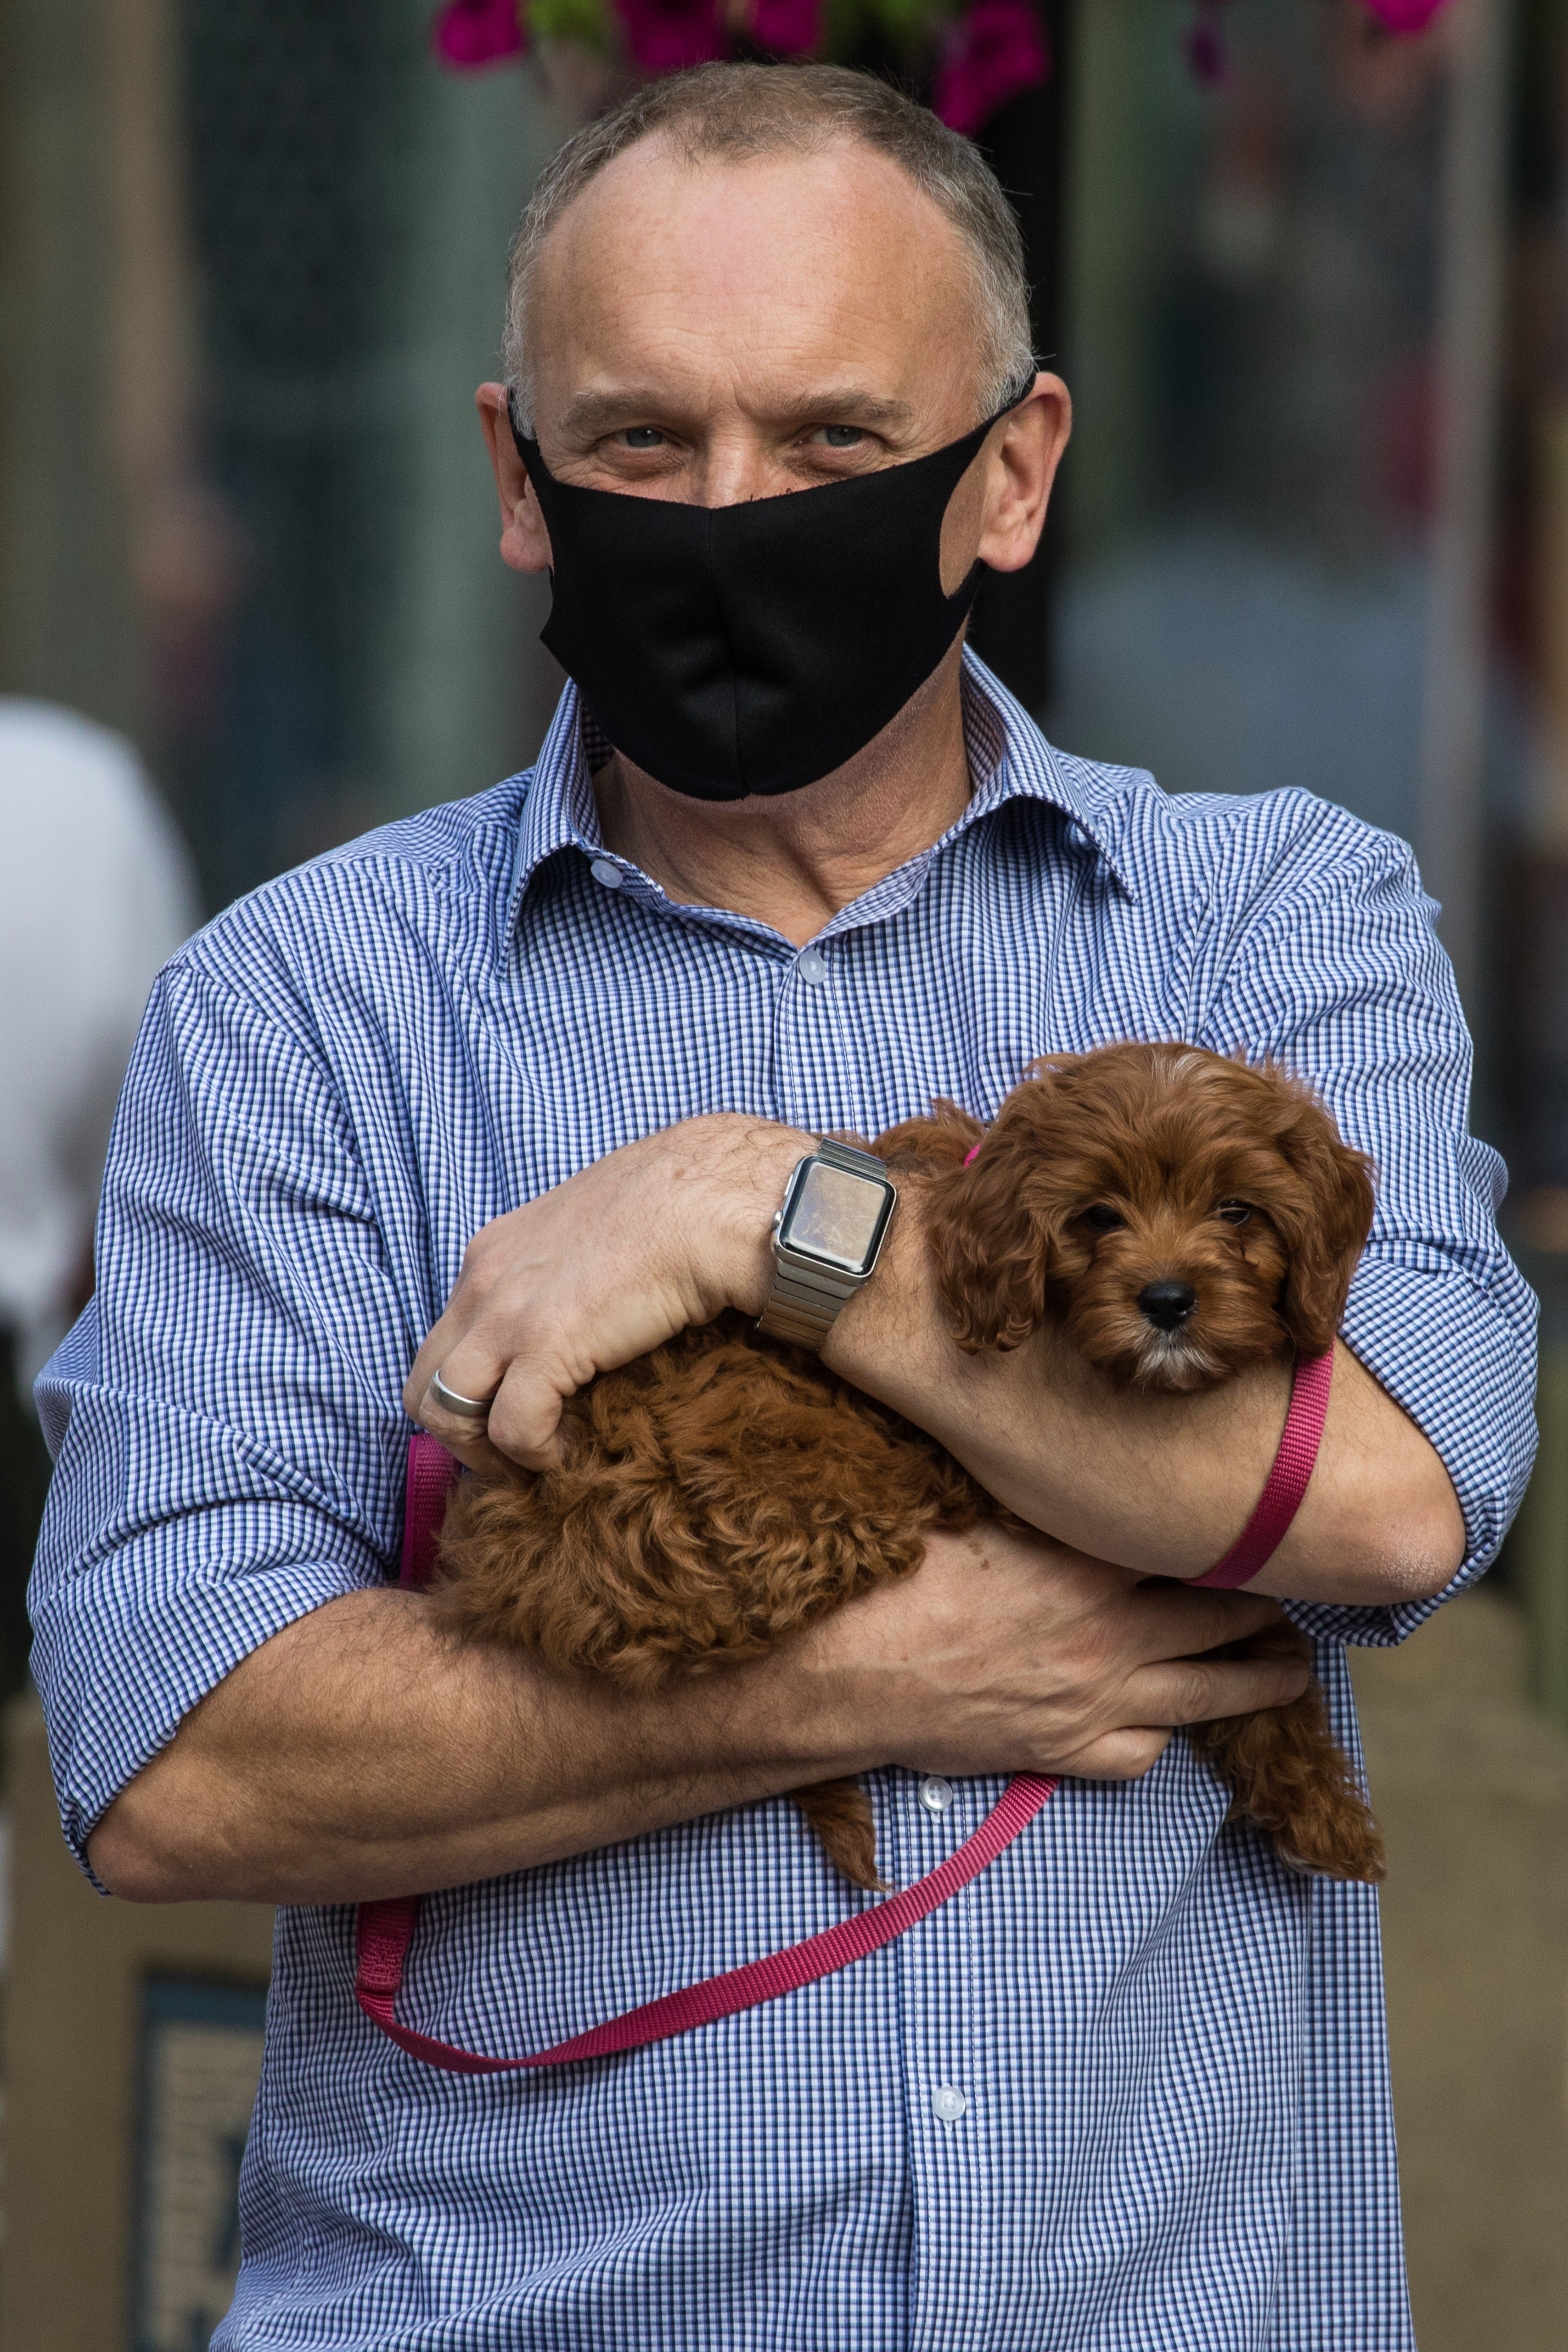 A man holding a small dog in his arms wears a face covering to help prevent the spread of the coronavirus on 20 September 2020 in Staines-Upon-Thames, United Kingdom. The Borough of Spelthorne, of which Staines-upon-Thames forms part along with Ashford, Sunbury-upon-Thames, Stanwell, Shepperton and Laleham, has been declared an area of concern for COVID-19 by the government following a marked rise in coronavirus infections which is inconsistent with other areas of Surrey. (photo by Mark Kerrison/In Pictures via Getty Images)